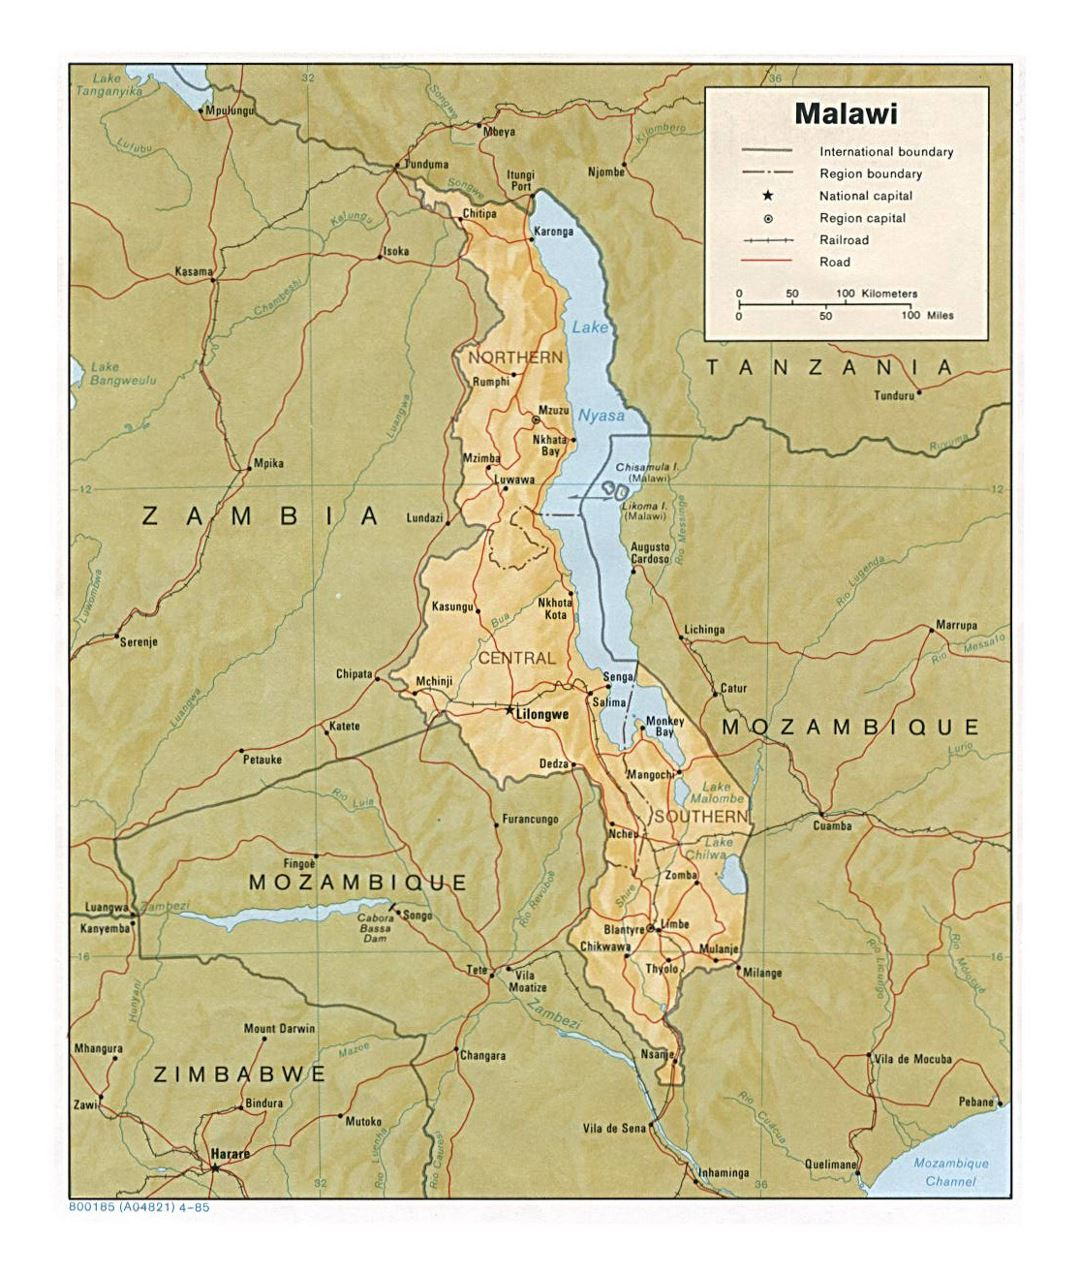 Detailed political and administrative map of Malawi with relief, roads, railroads and major cities - 1985